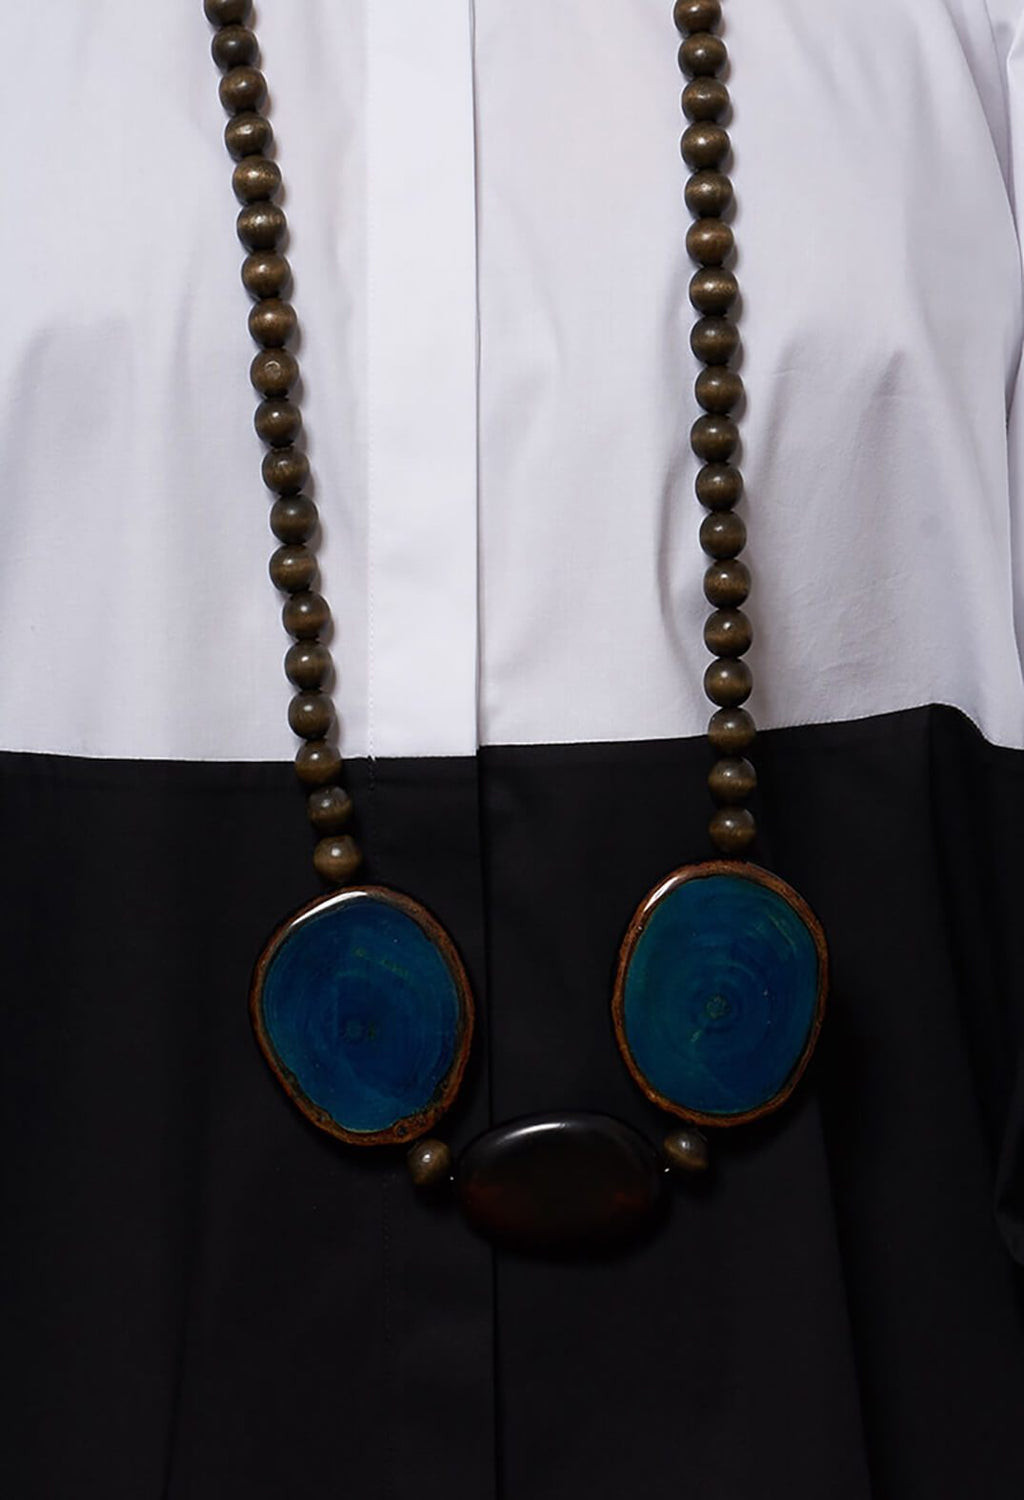 Wood Stones and Wooden Element with Resin Necklace in Blue